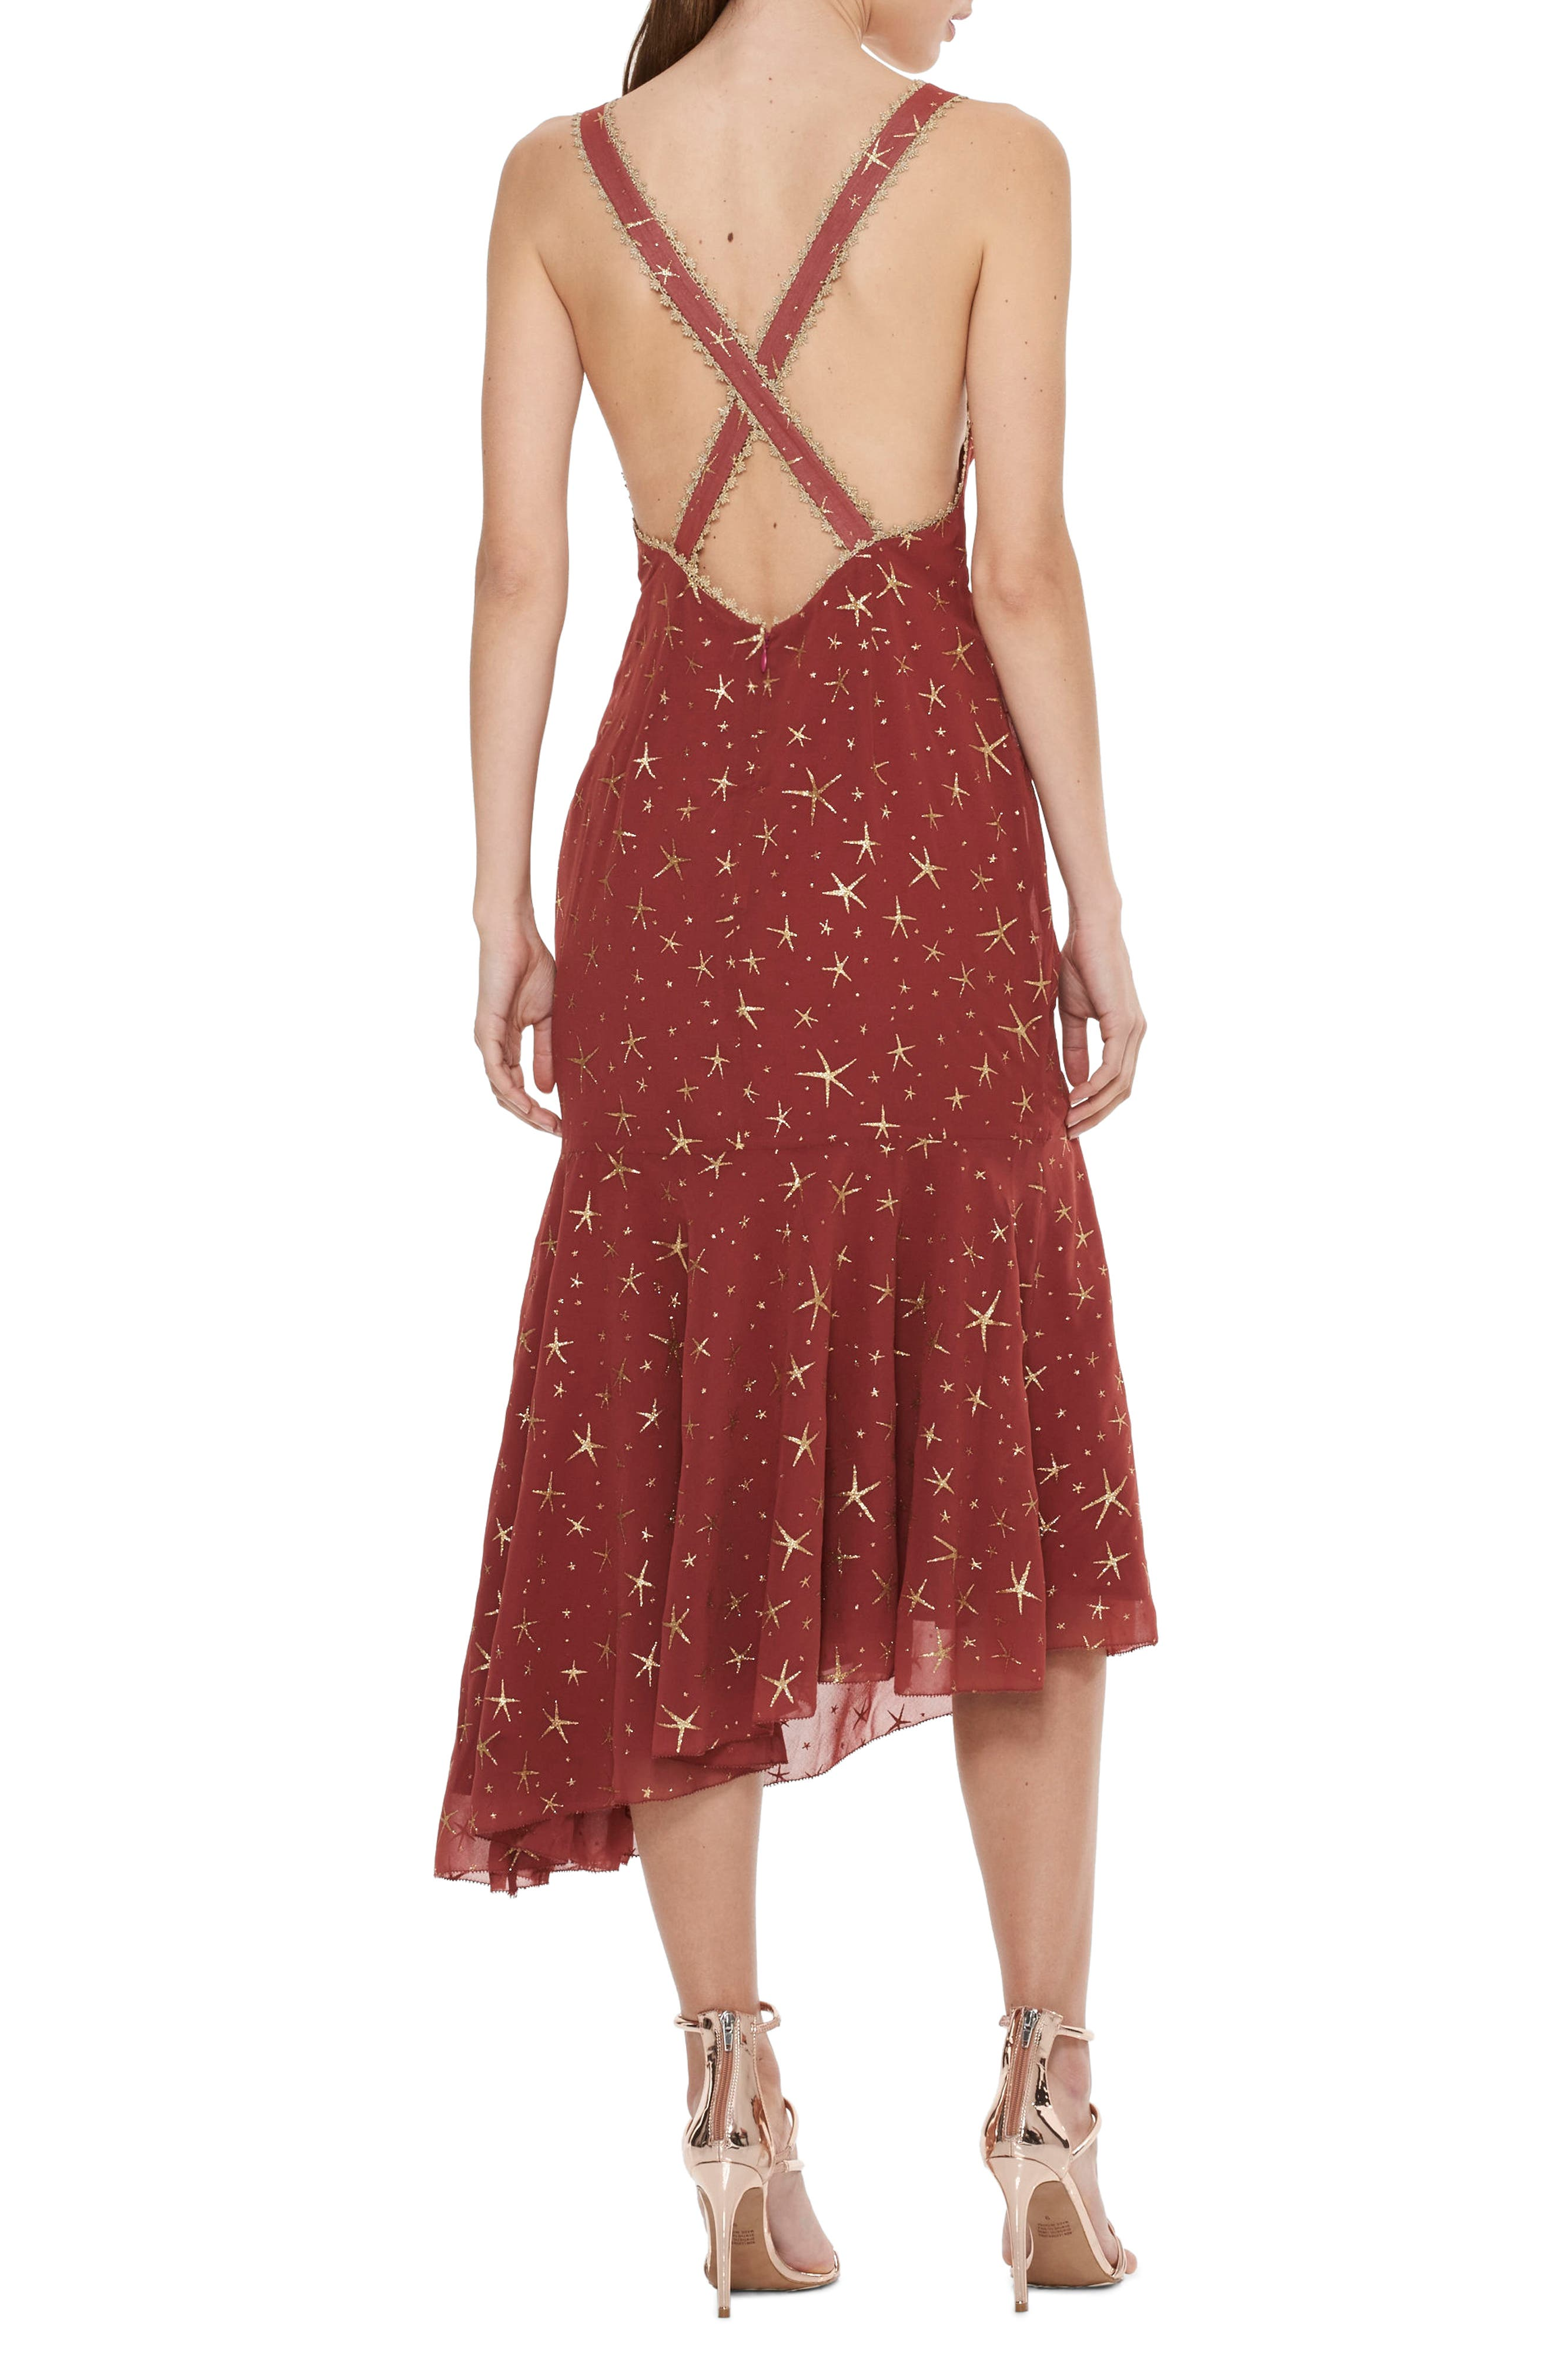 Stay Together Asymmetric Midi Dress,                             Alternate thumbnail 2, color,                             Wine And Gold